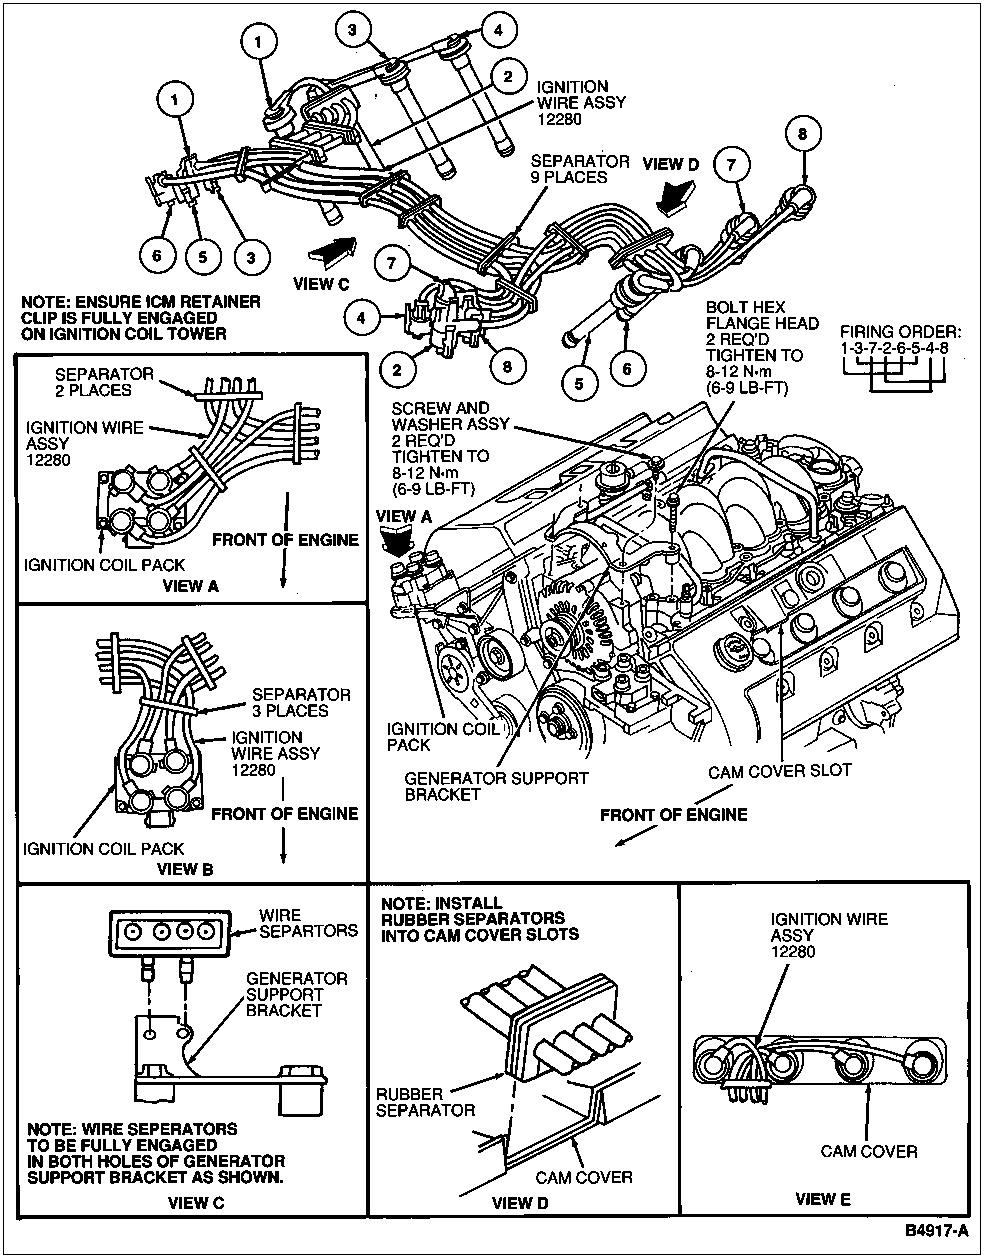 06 Lincoln Town Car Engine Diagram Just Another Wiring Blog Automotive Gas Diagrams 98 Continental Fuse Box Library Rh 40 Ayazagagrup Org Parts 1999